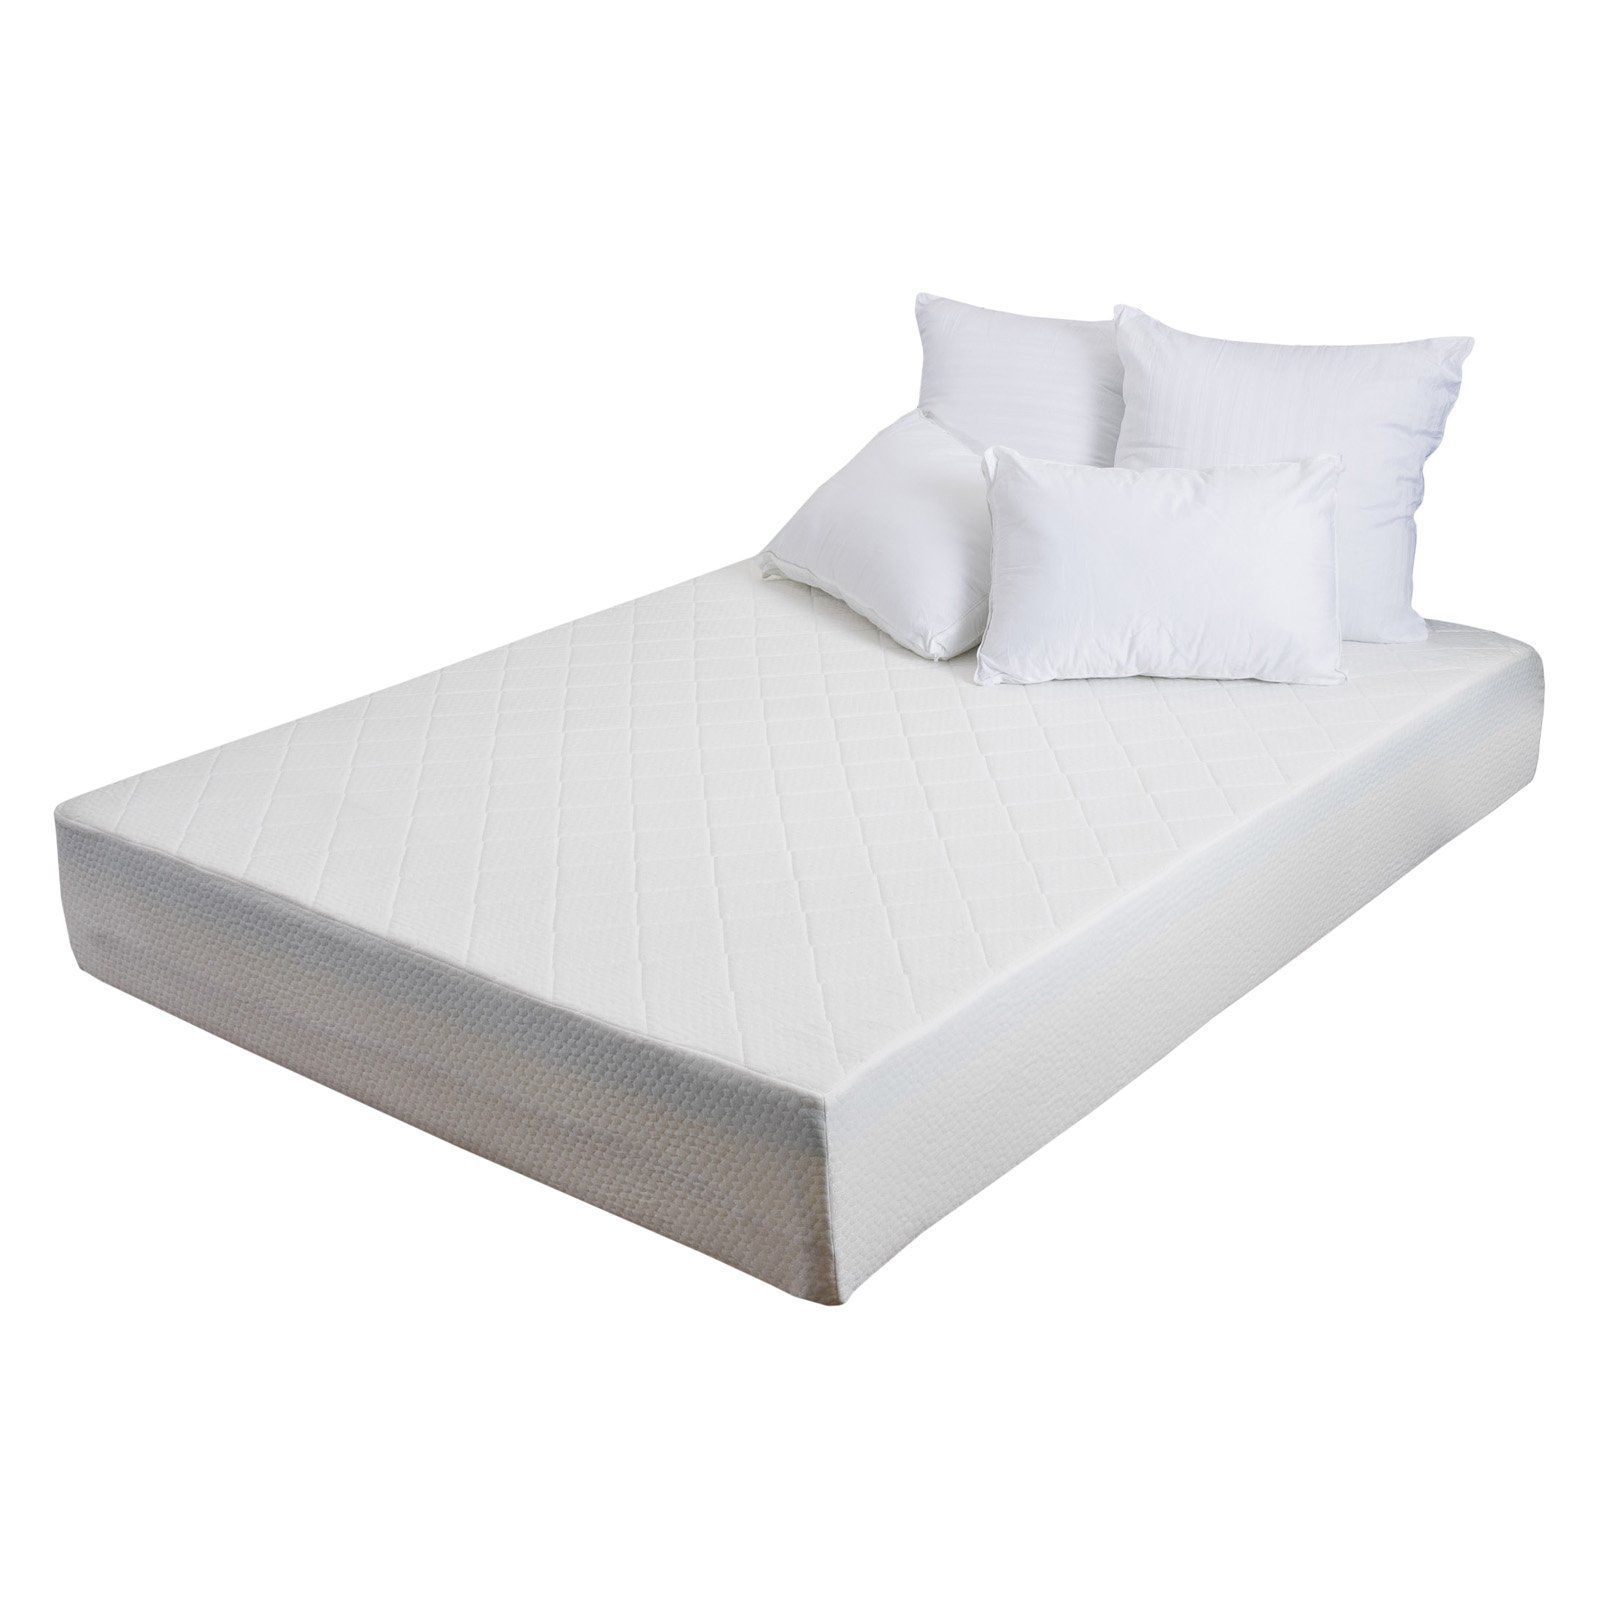 12 In Memory Foam Mattress Soft Mattress Mattress Foam Mattress